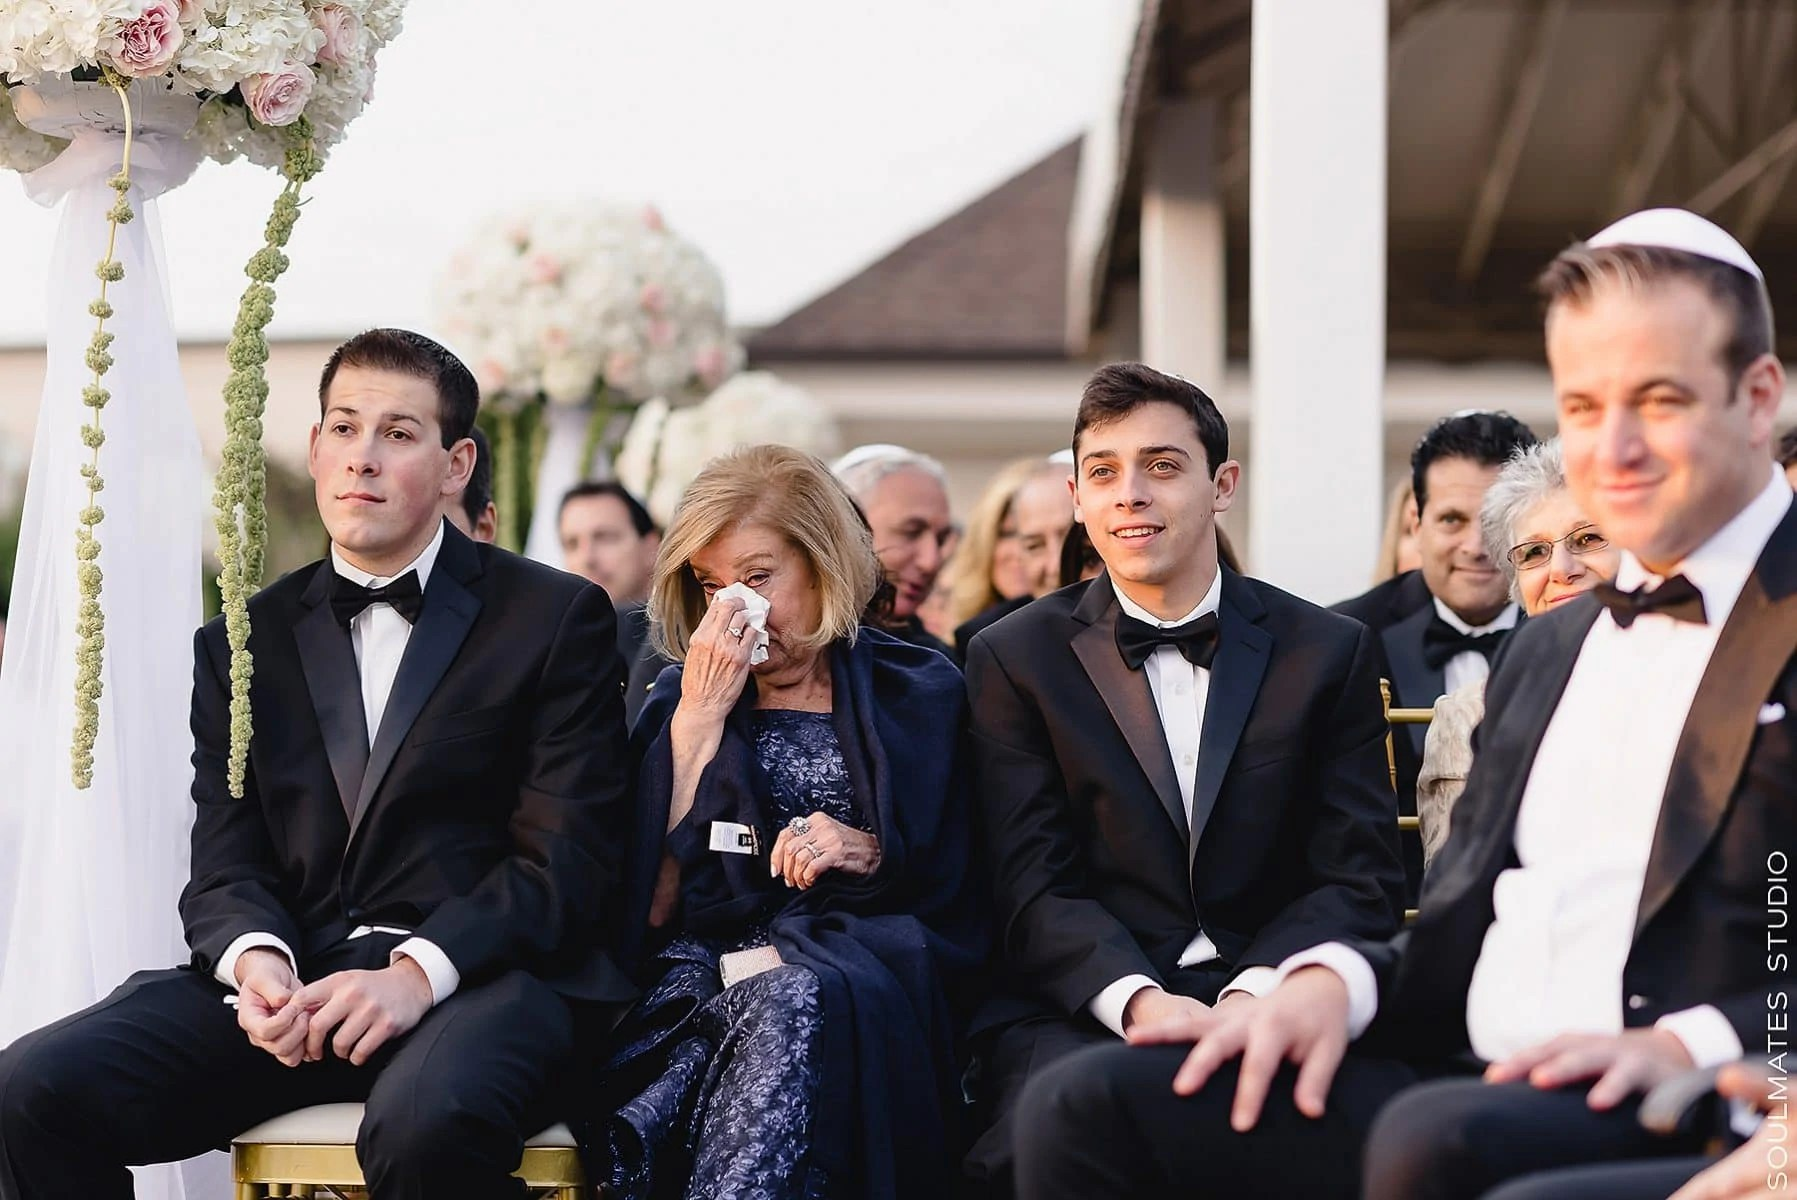 Emotional moment during Fresh Meadow Country Club Jewish wedding ceremony